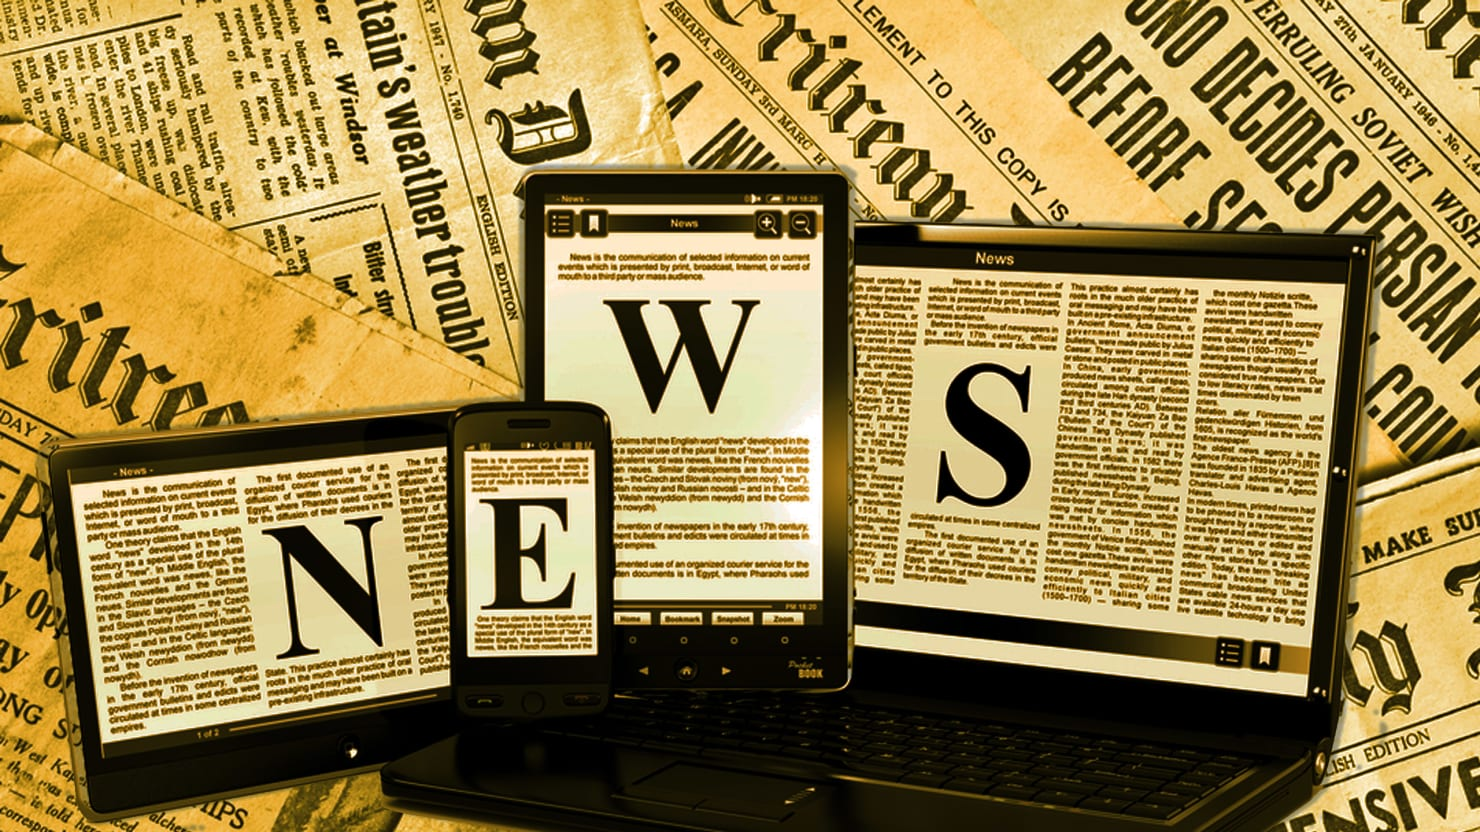 Dec 04,  · The source for business news and analysis. Covering economic policy, business policy, financial news, economic issues, stock market data, local business, technology and more.